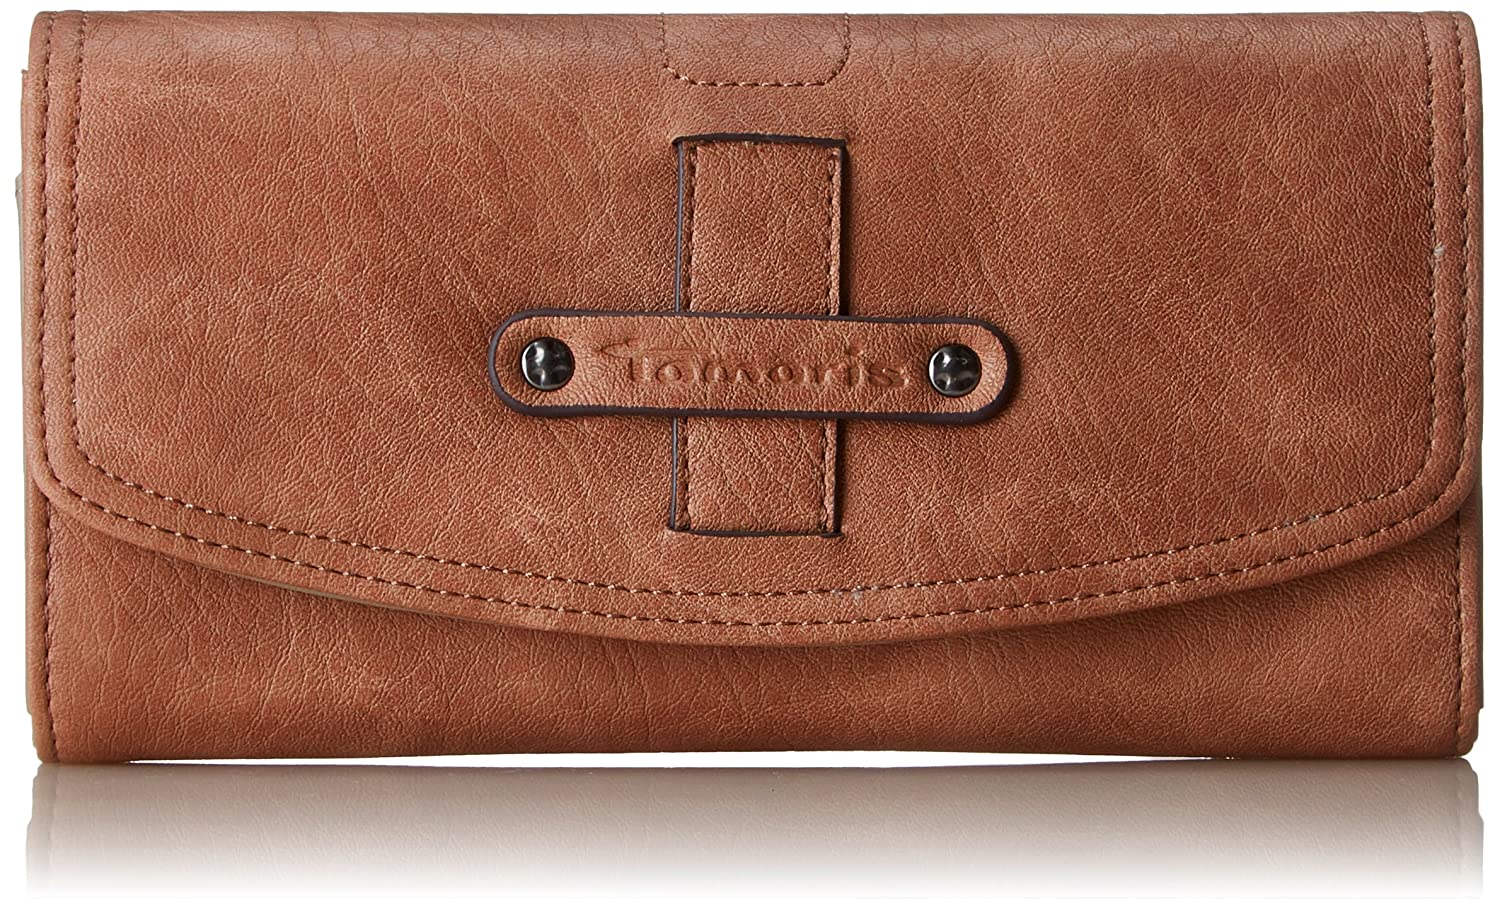 Tamaris Damen Bernadette Big Wallet with Flap Geldbörse, 2x10x19,5 cm